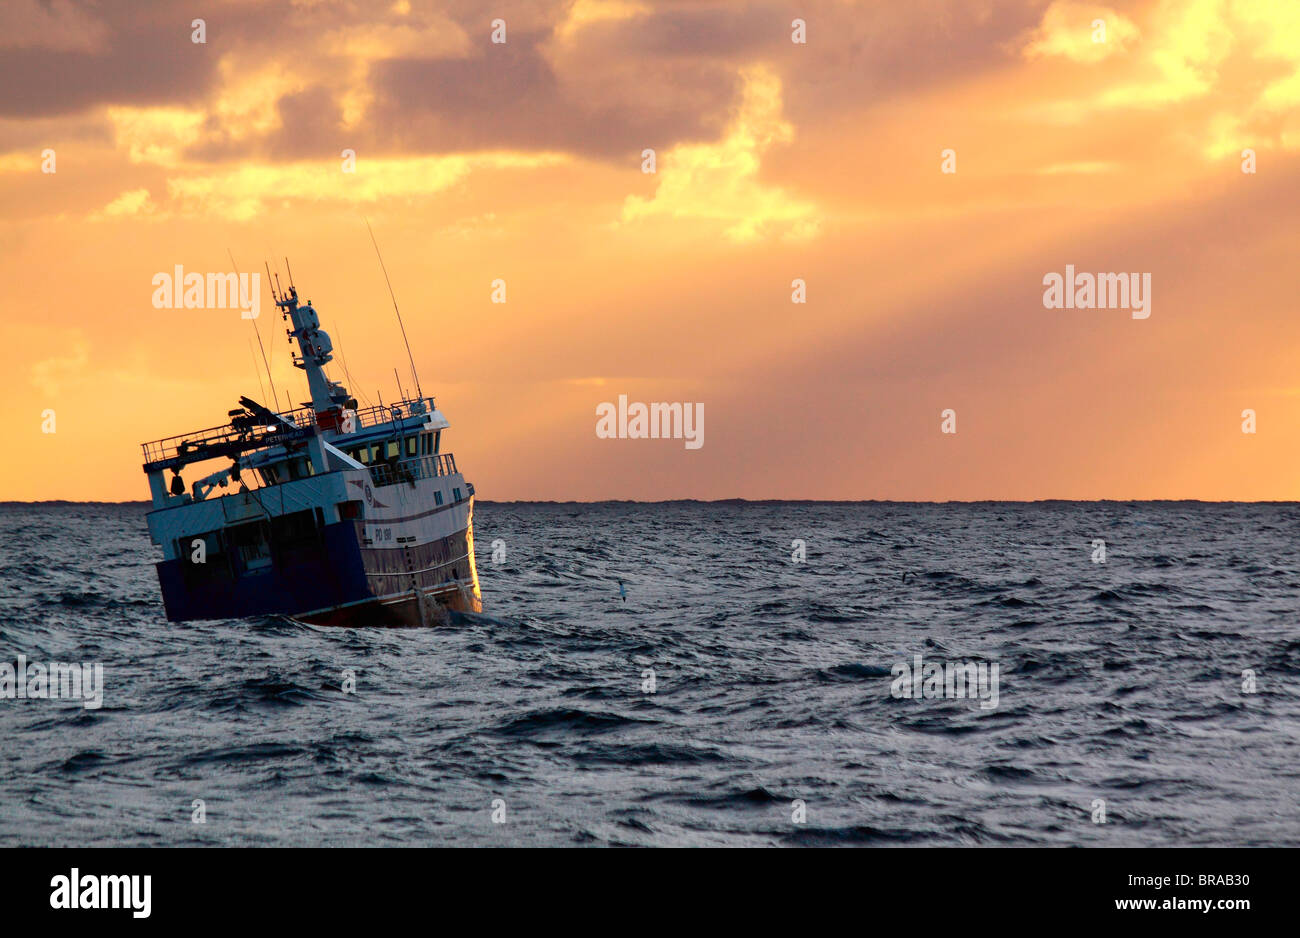 Trawler at sunset on the North Sea, September 2009.  Property released. - Stock Image